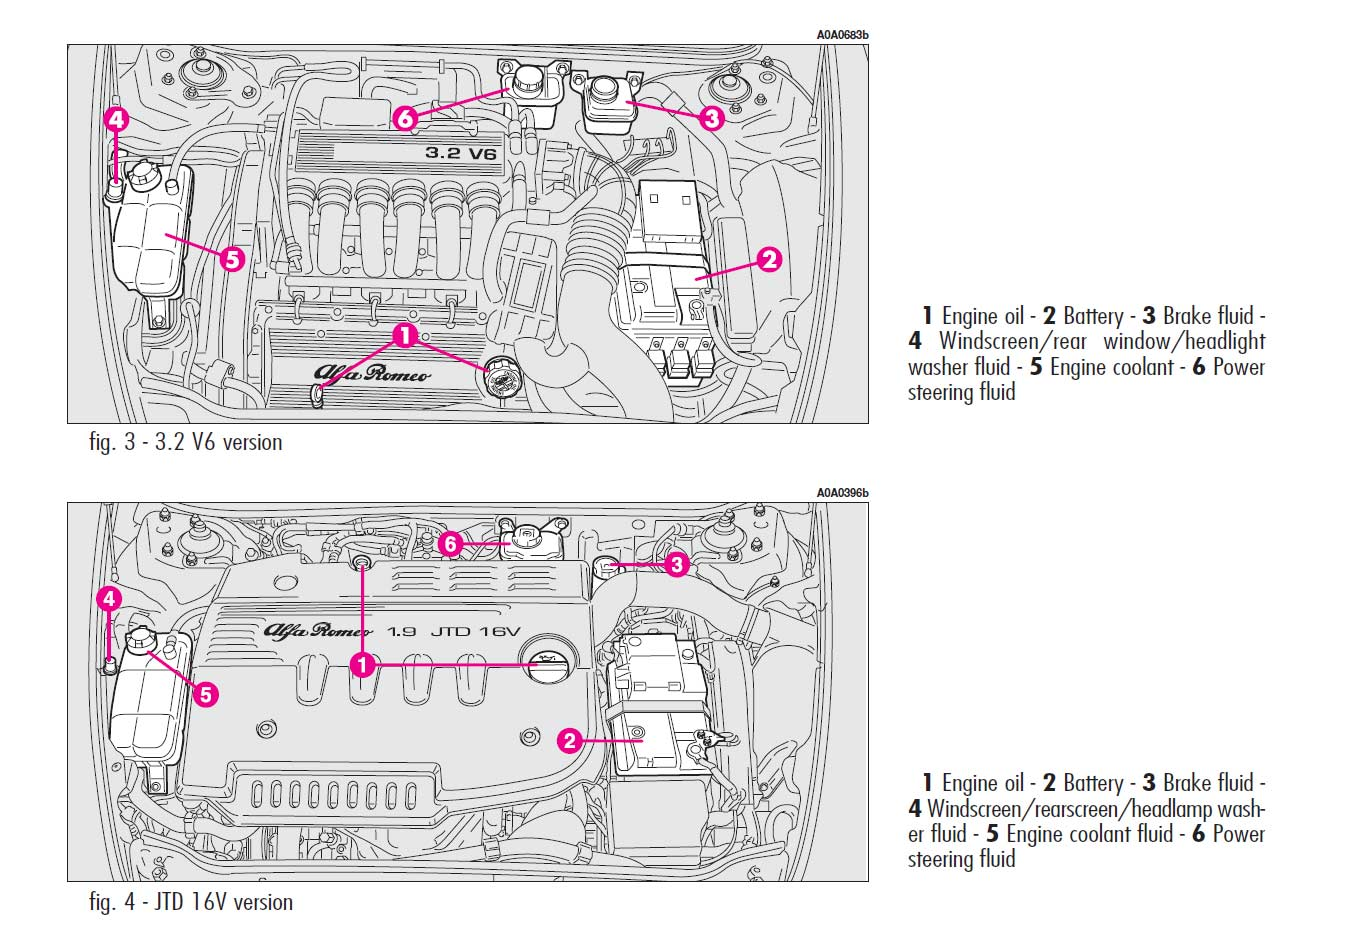 Alfa Romeo 145 Fuse Box Diagram All Kind Of Wiring Diagrams 2005 Bmw X5 Also Spider Gt 30 Images Mifinder Co 19 Tdi 147